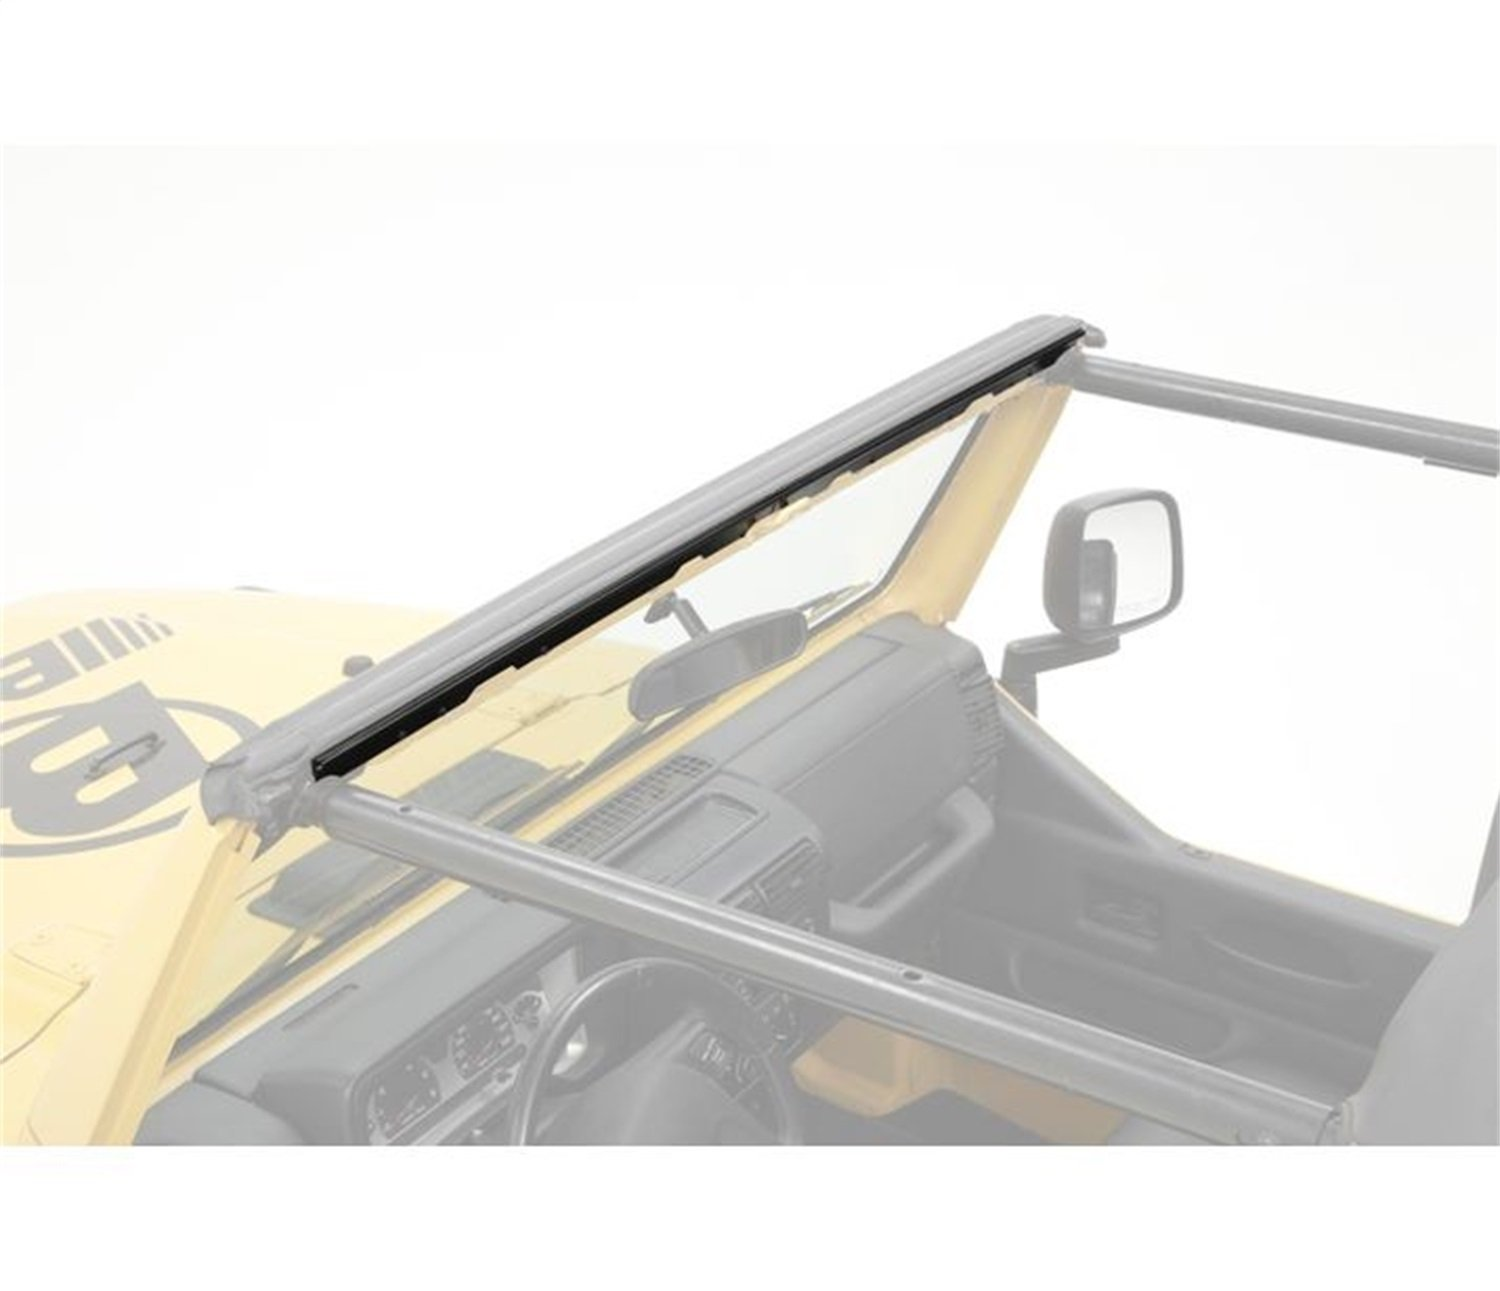 Bestop 51210-01 Black Drill-in Style Windshield Channel for 1997-2002 Wrangler TJ